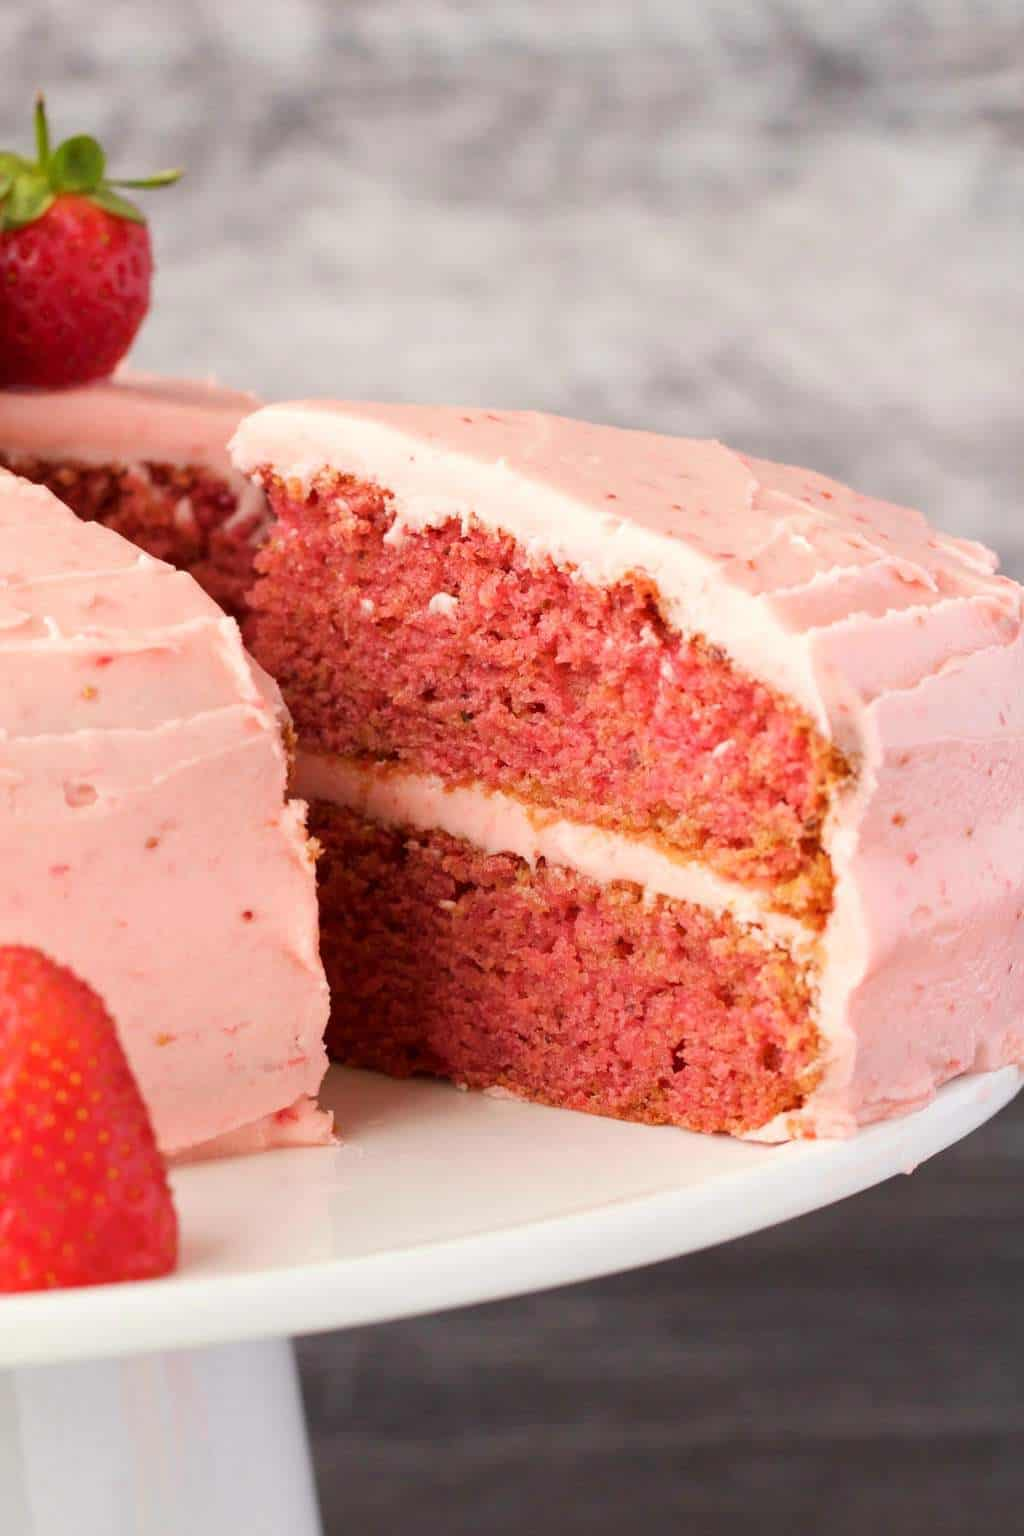 What To Do With Strawberry Cake Mix